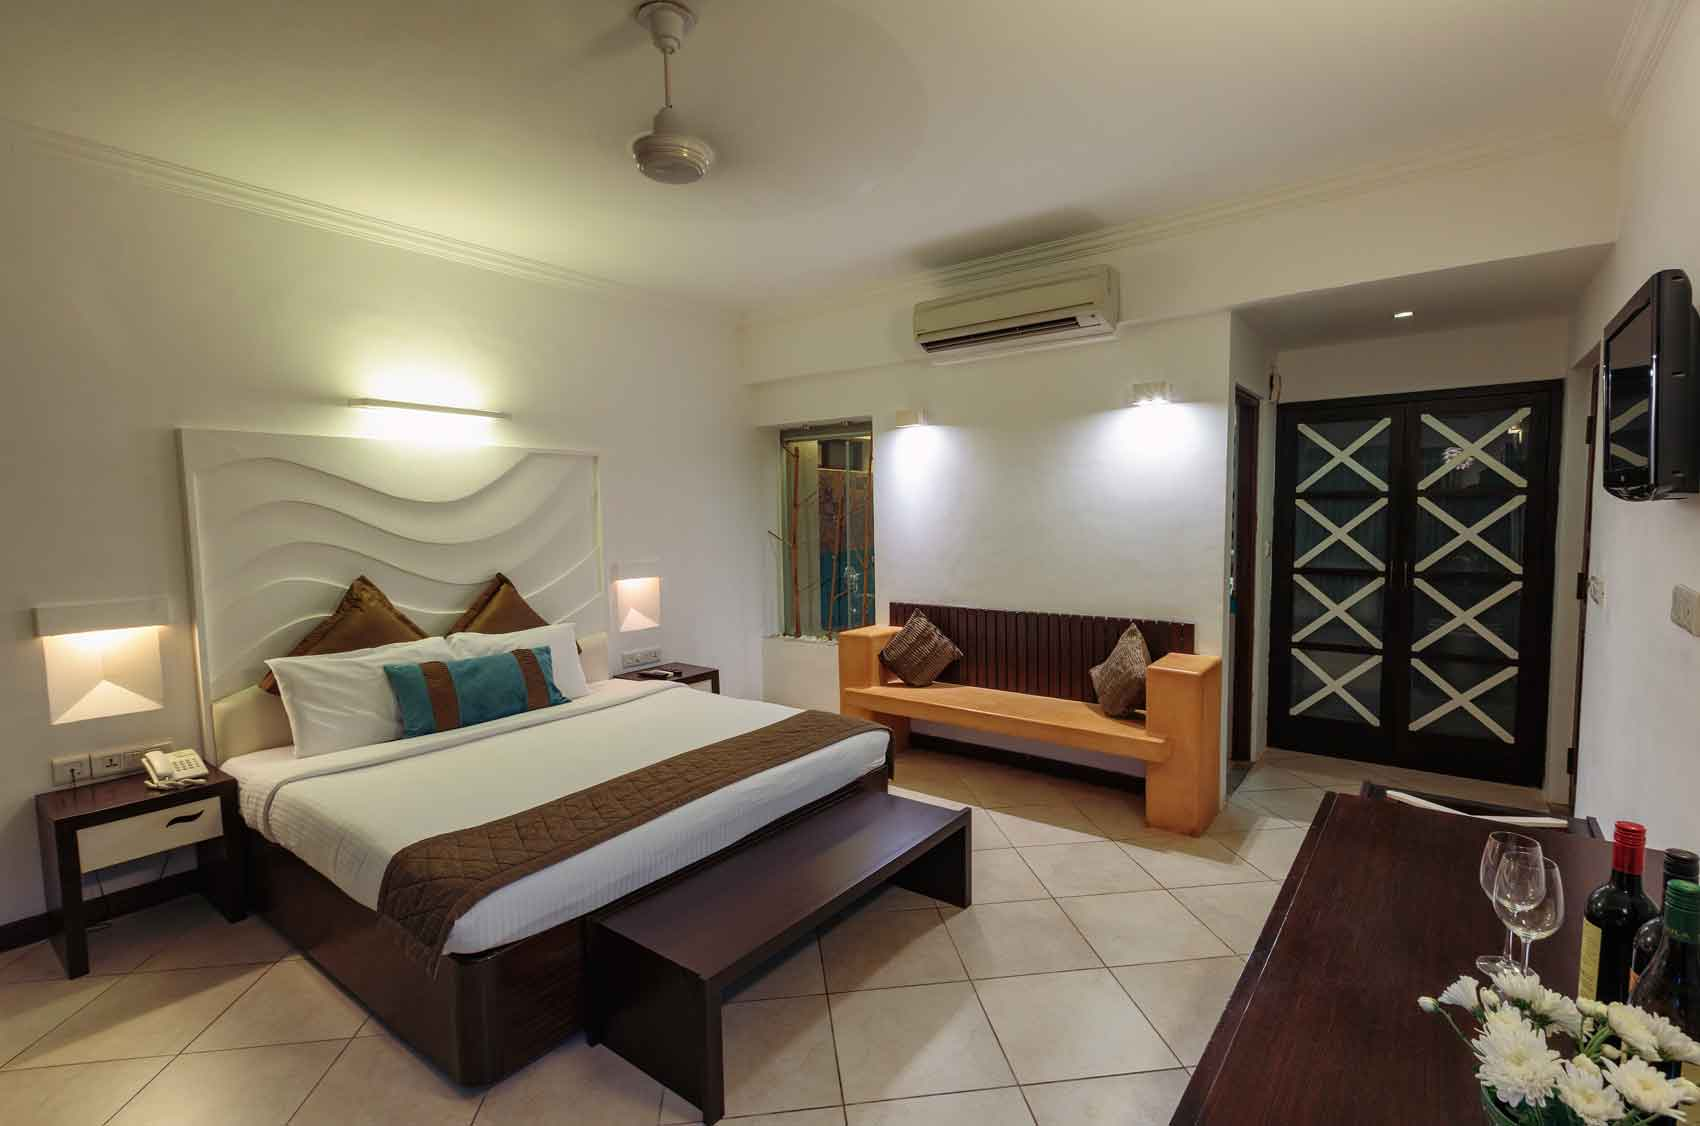 superior suite room goa | Affordable Hotel Room in Goa | Affordable Hotel Stay in Goa